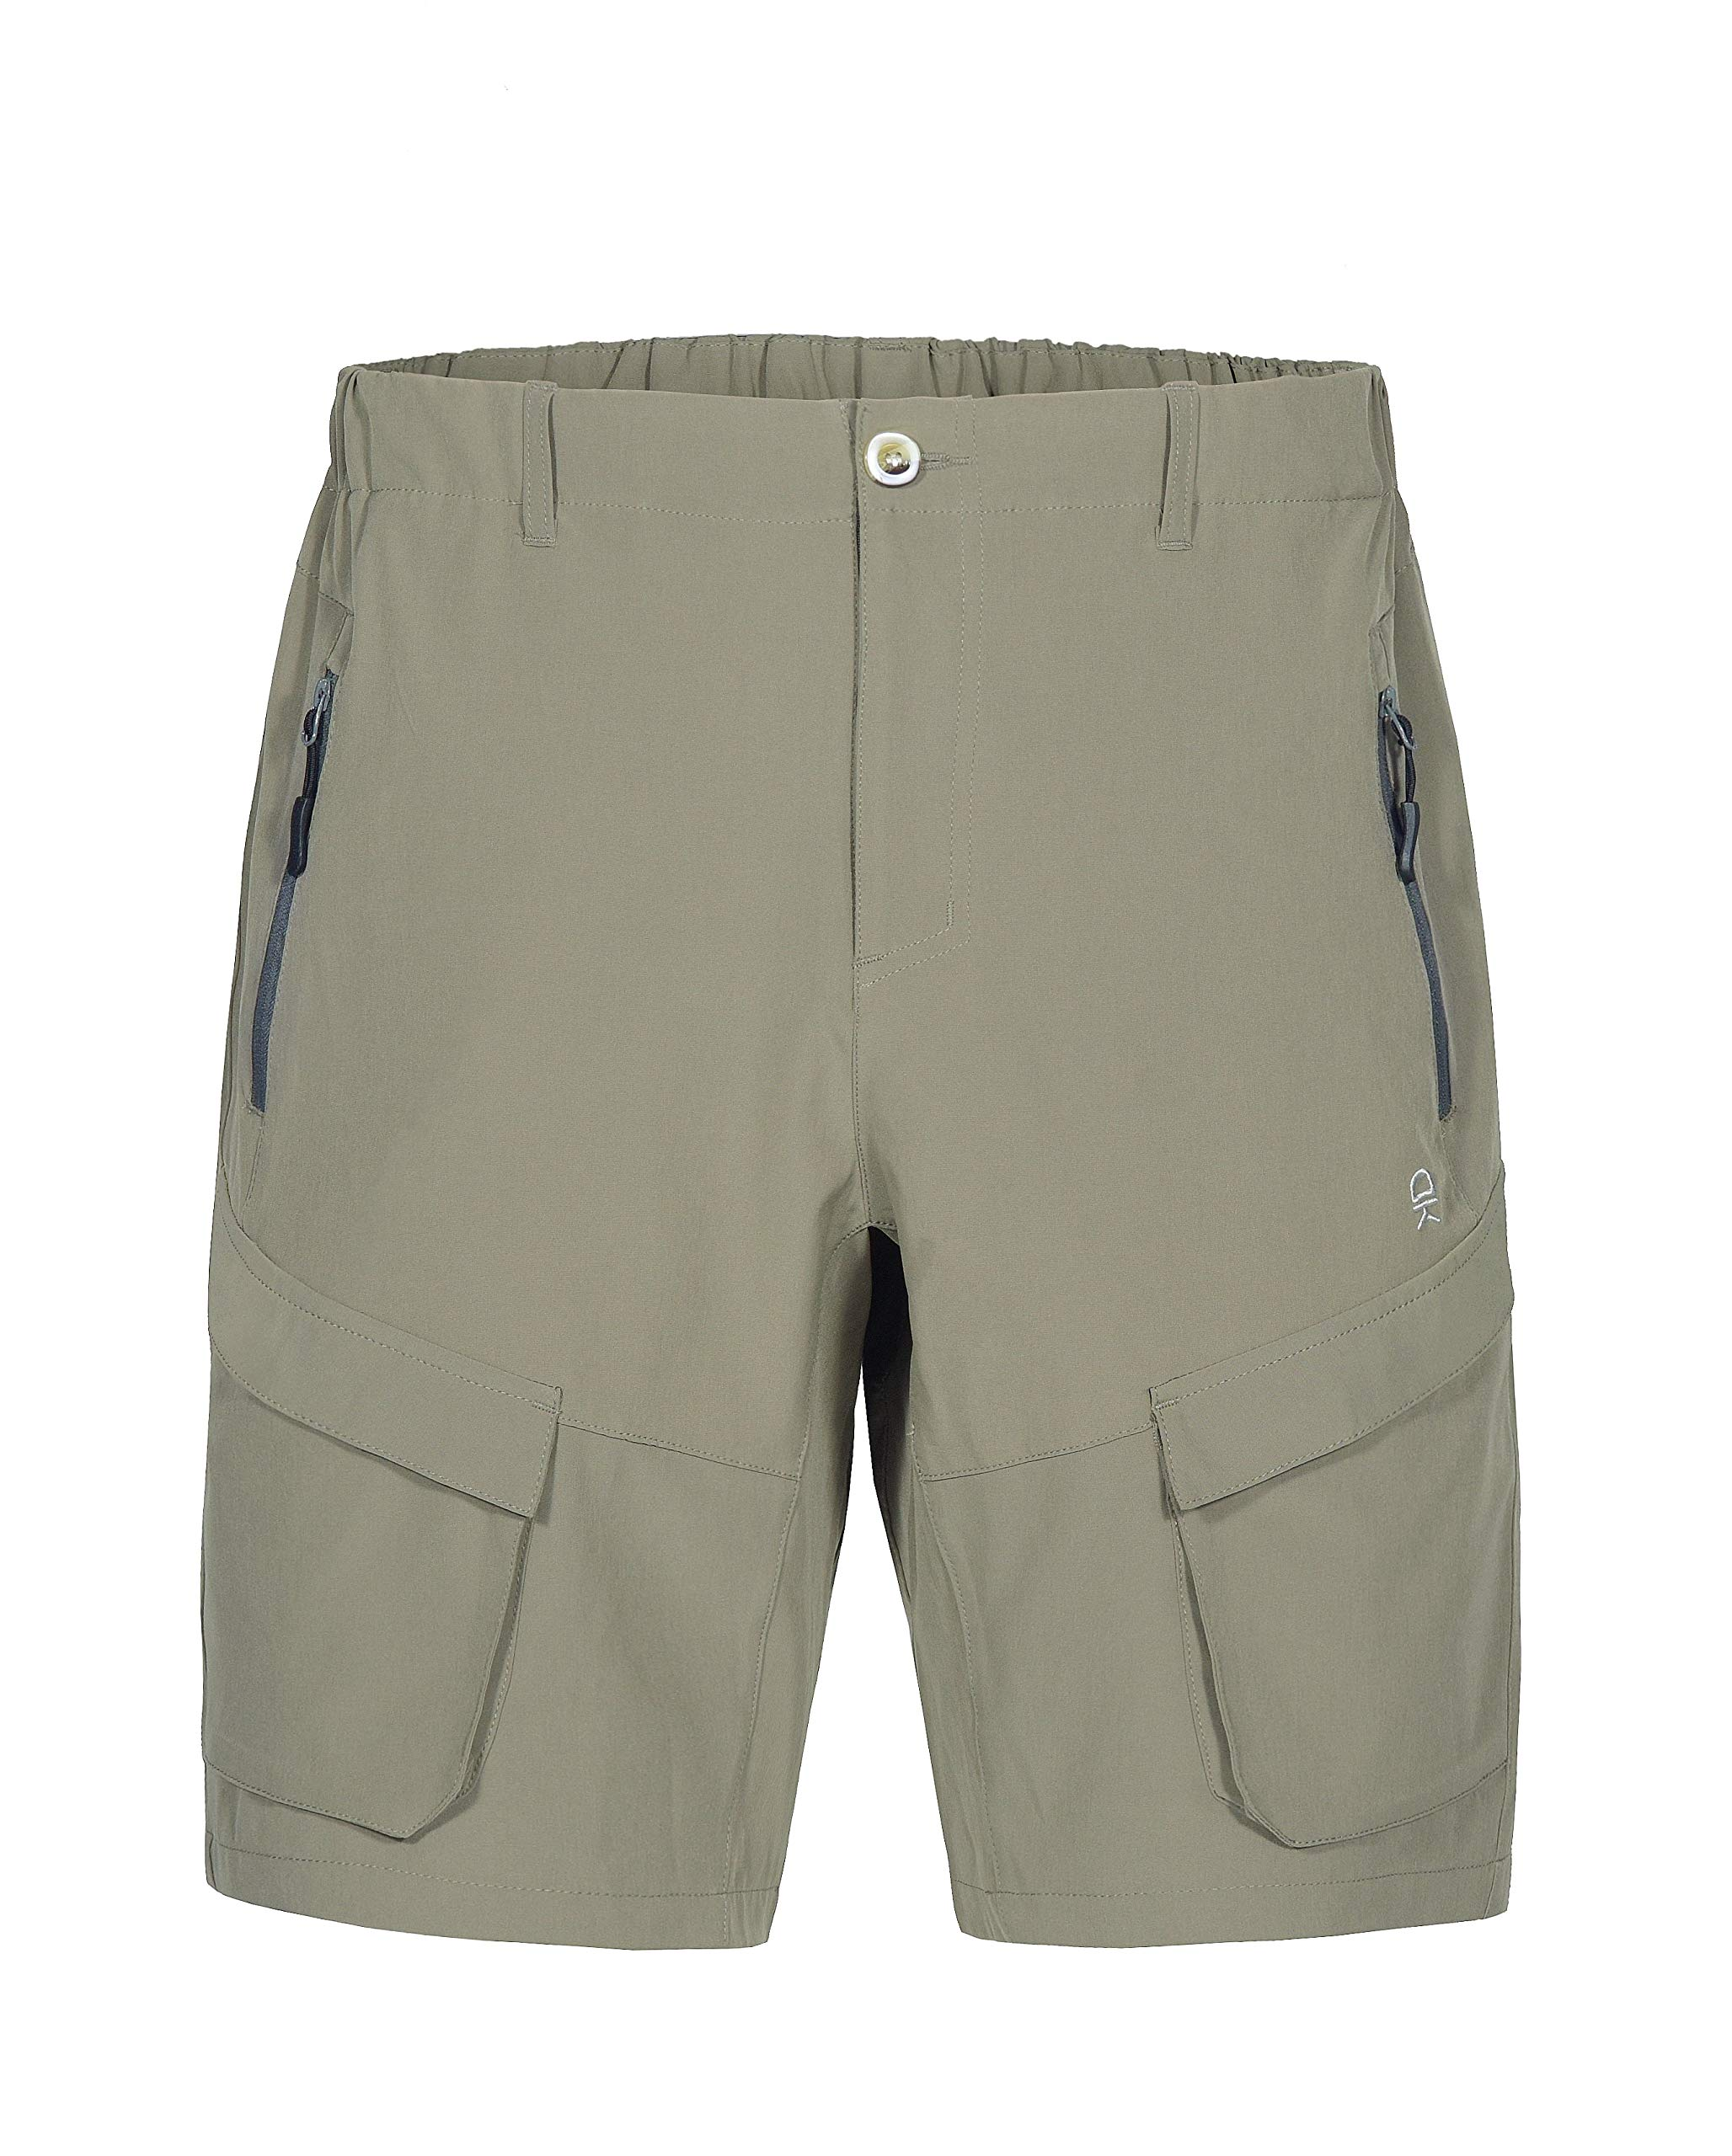 Little Donkey Andy Men's Stretch Quick Dry Cargo Shorts for Hiking, Camping, Travel Sage Size S by Little Donkey Andy